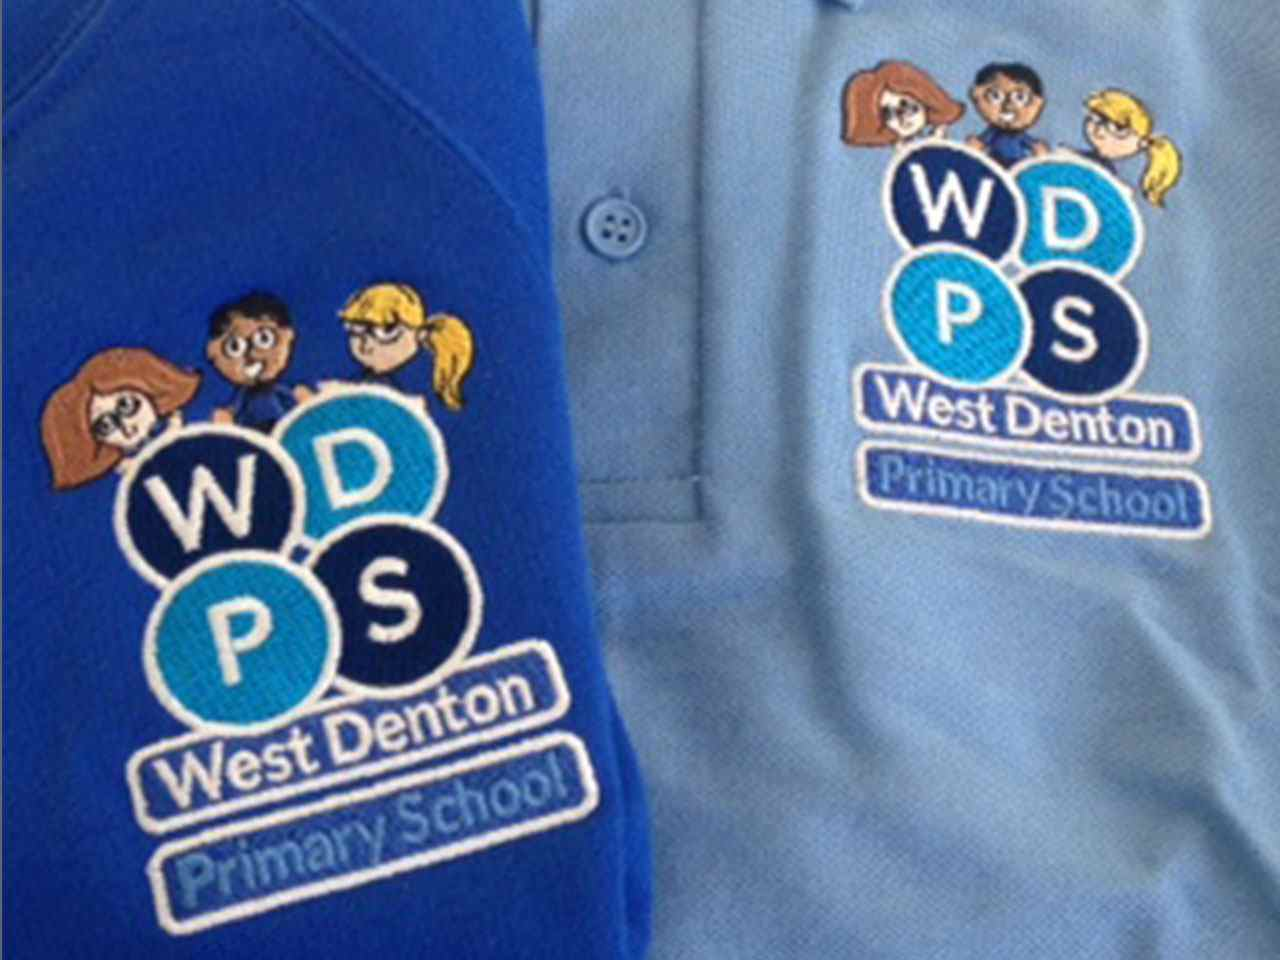 WDPS logo on uniform